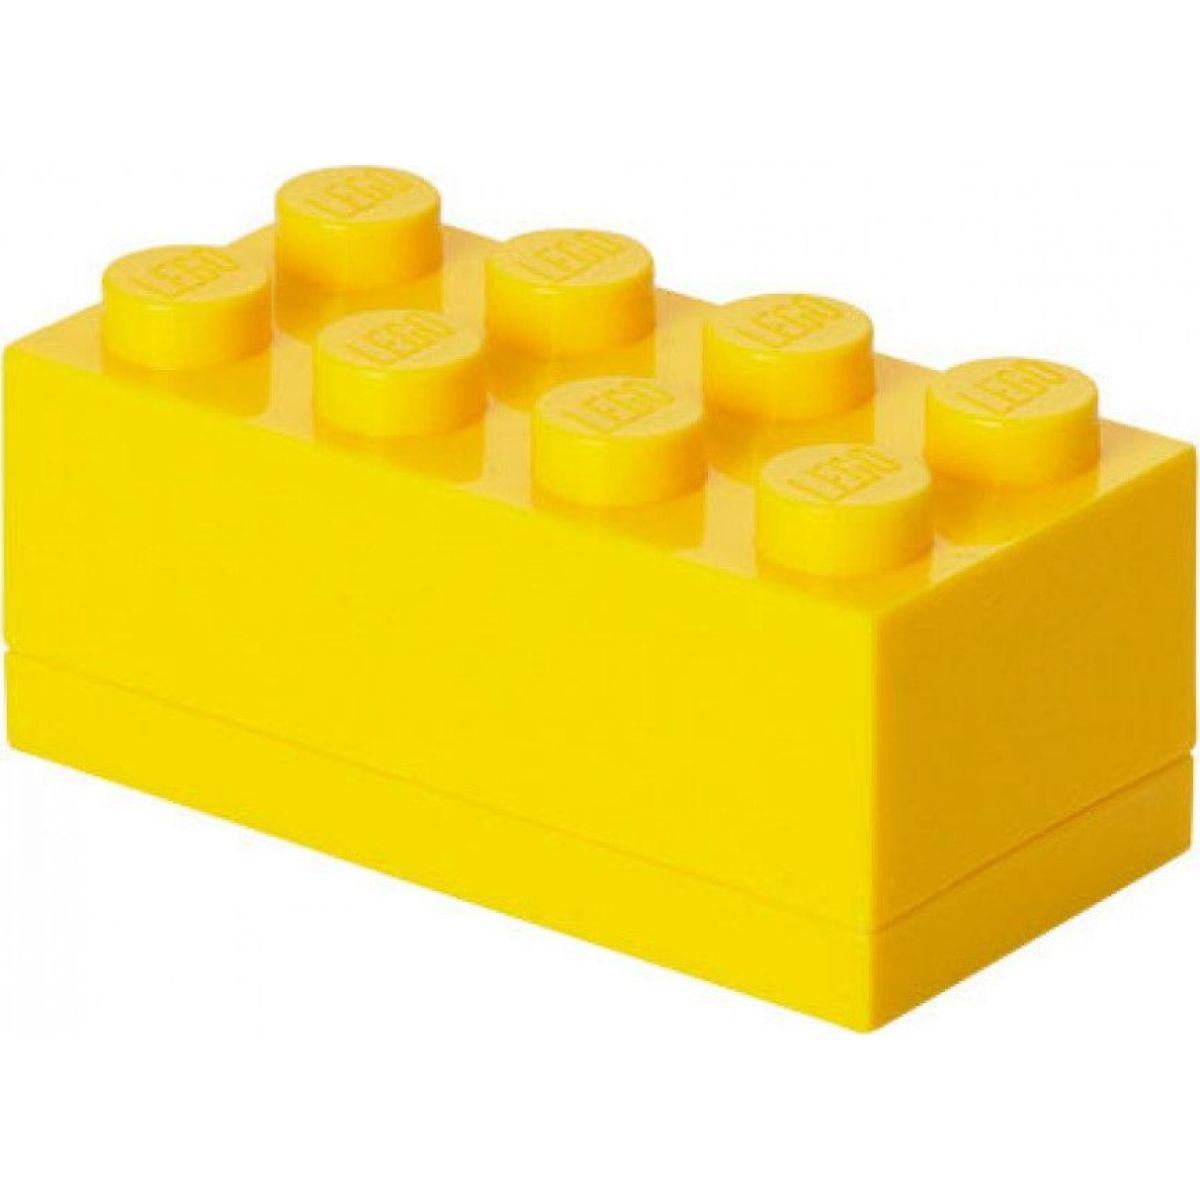 LEGO Mini Box 46 x 93 x 43 cm Žlutá